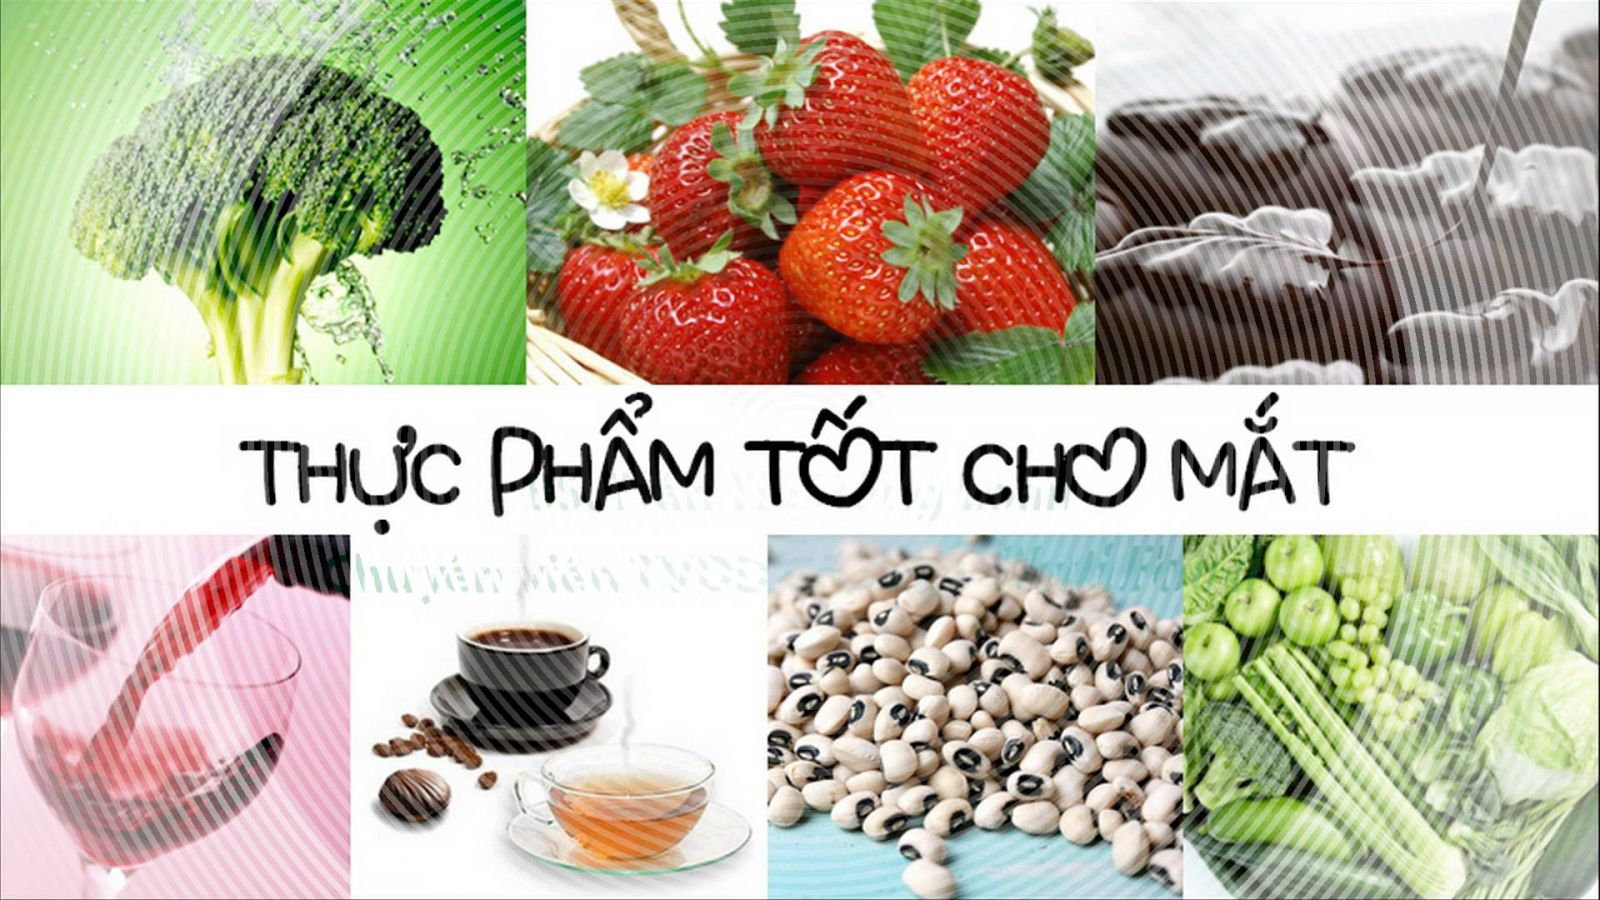 che-do-dinh-duong-cho-nguoi-mo-cuom-mat-1